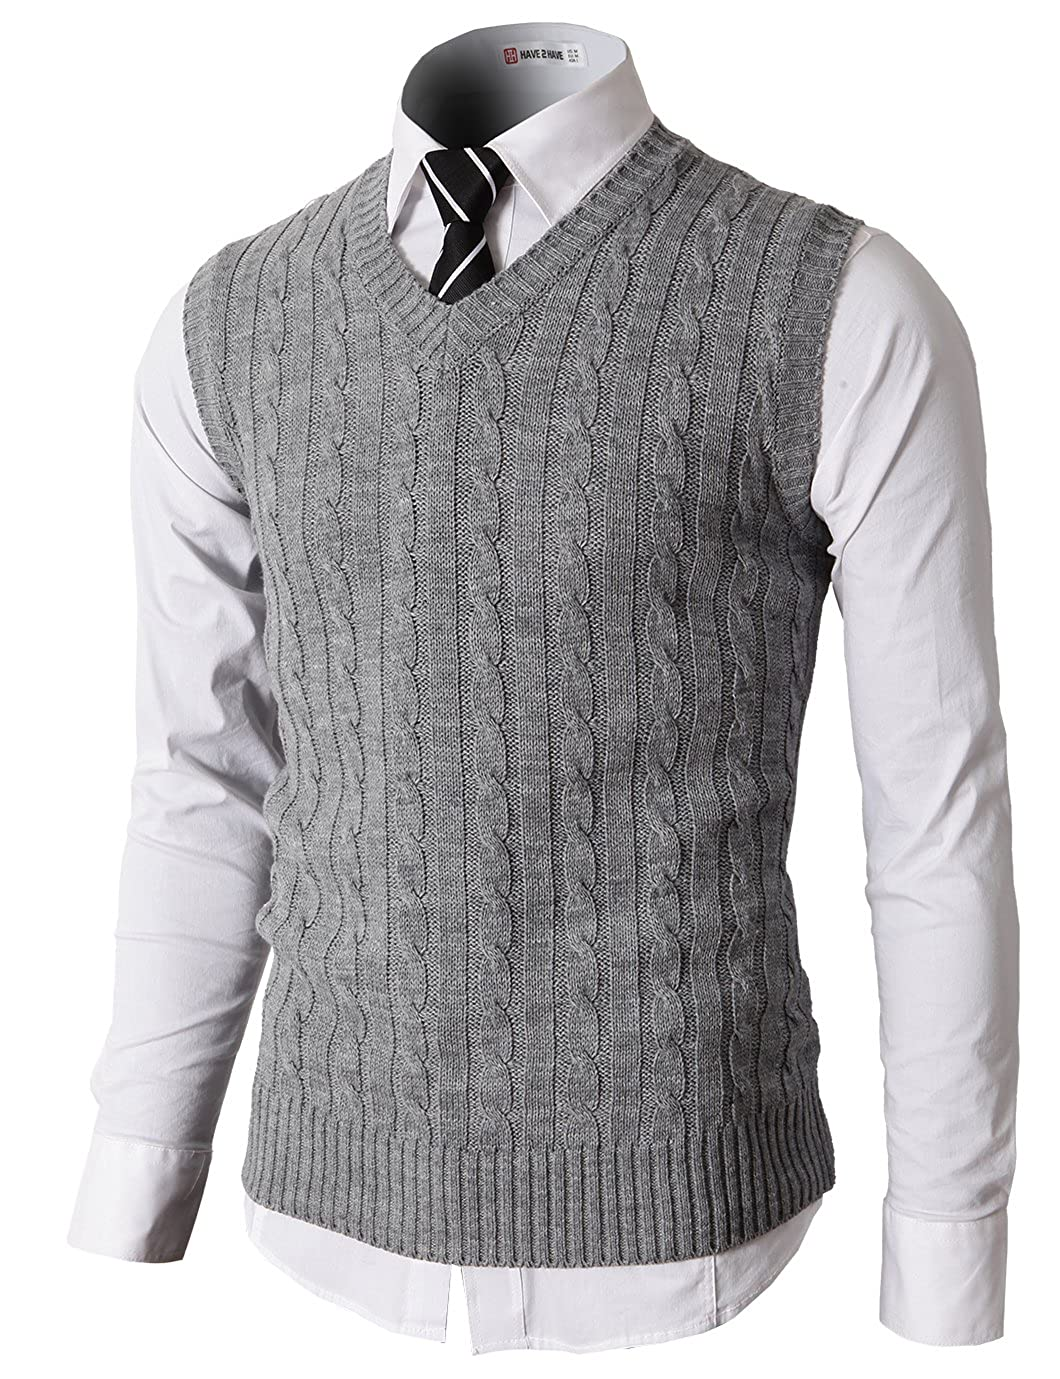 1940s Style Mens Shirts, Sweaters, Vests H2H Mens Casual Knitted Slim Fit V-neck Vest With Twisted Patterned $26.80 AT vintagedancer.com